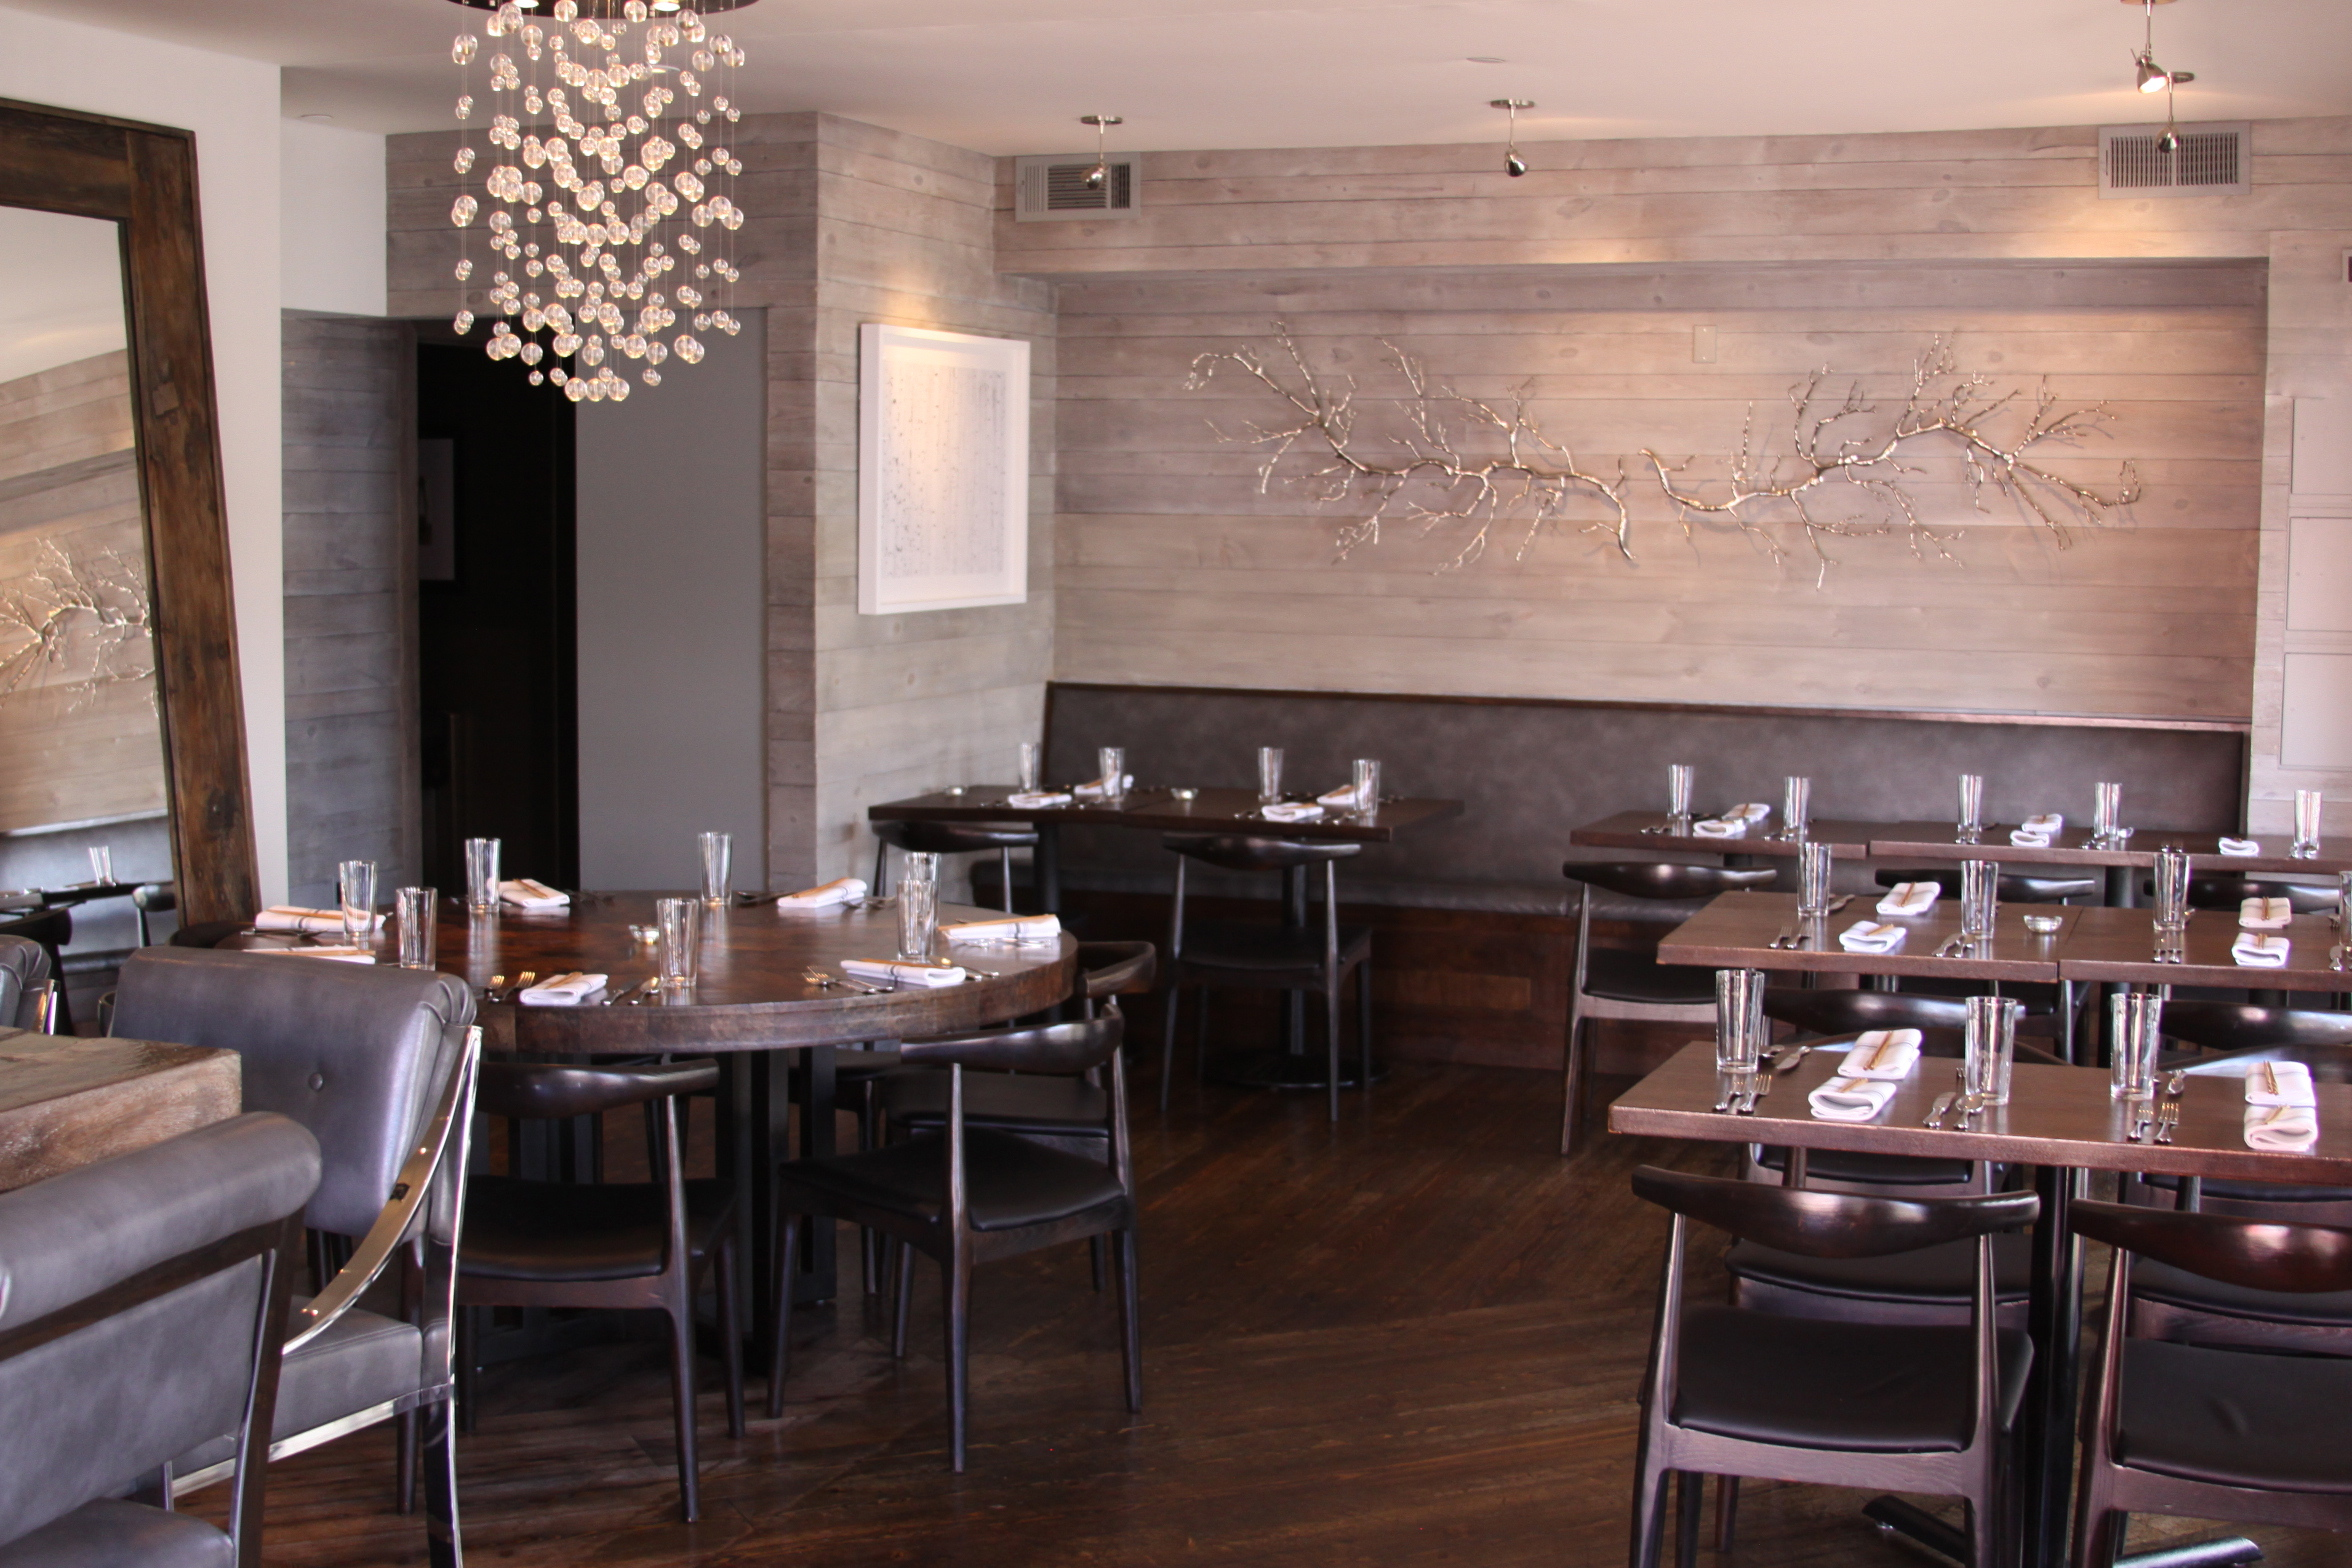 How To Aspen Dining In A Covid 19 World Aspen